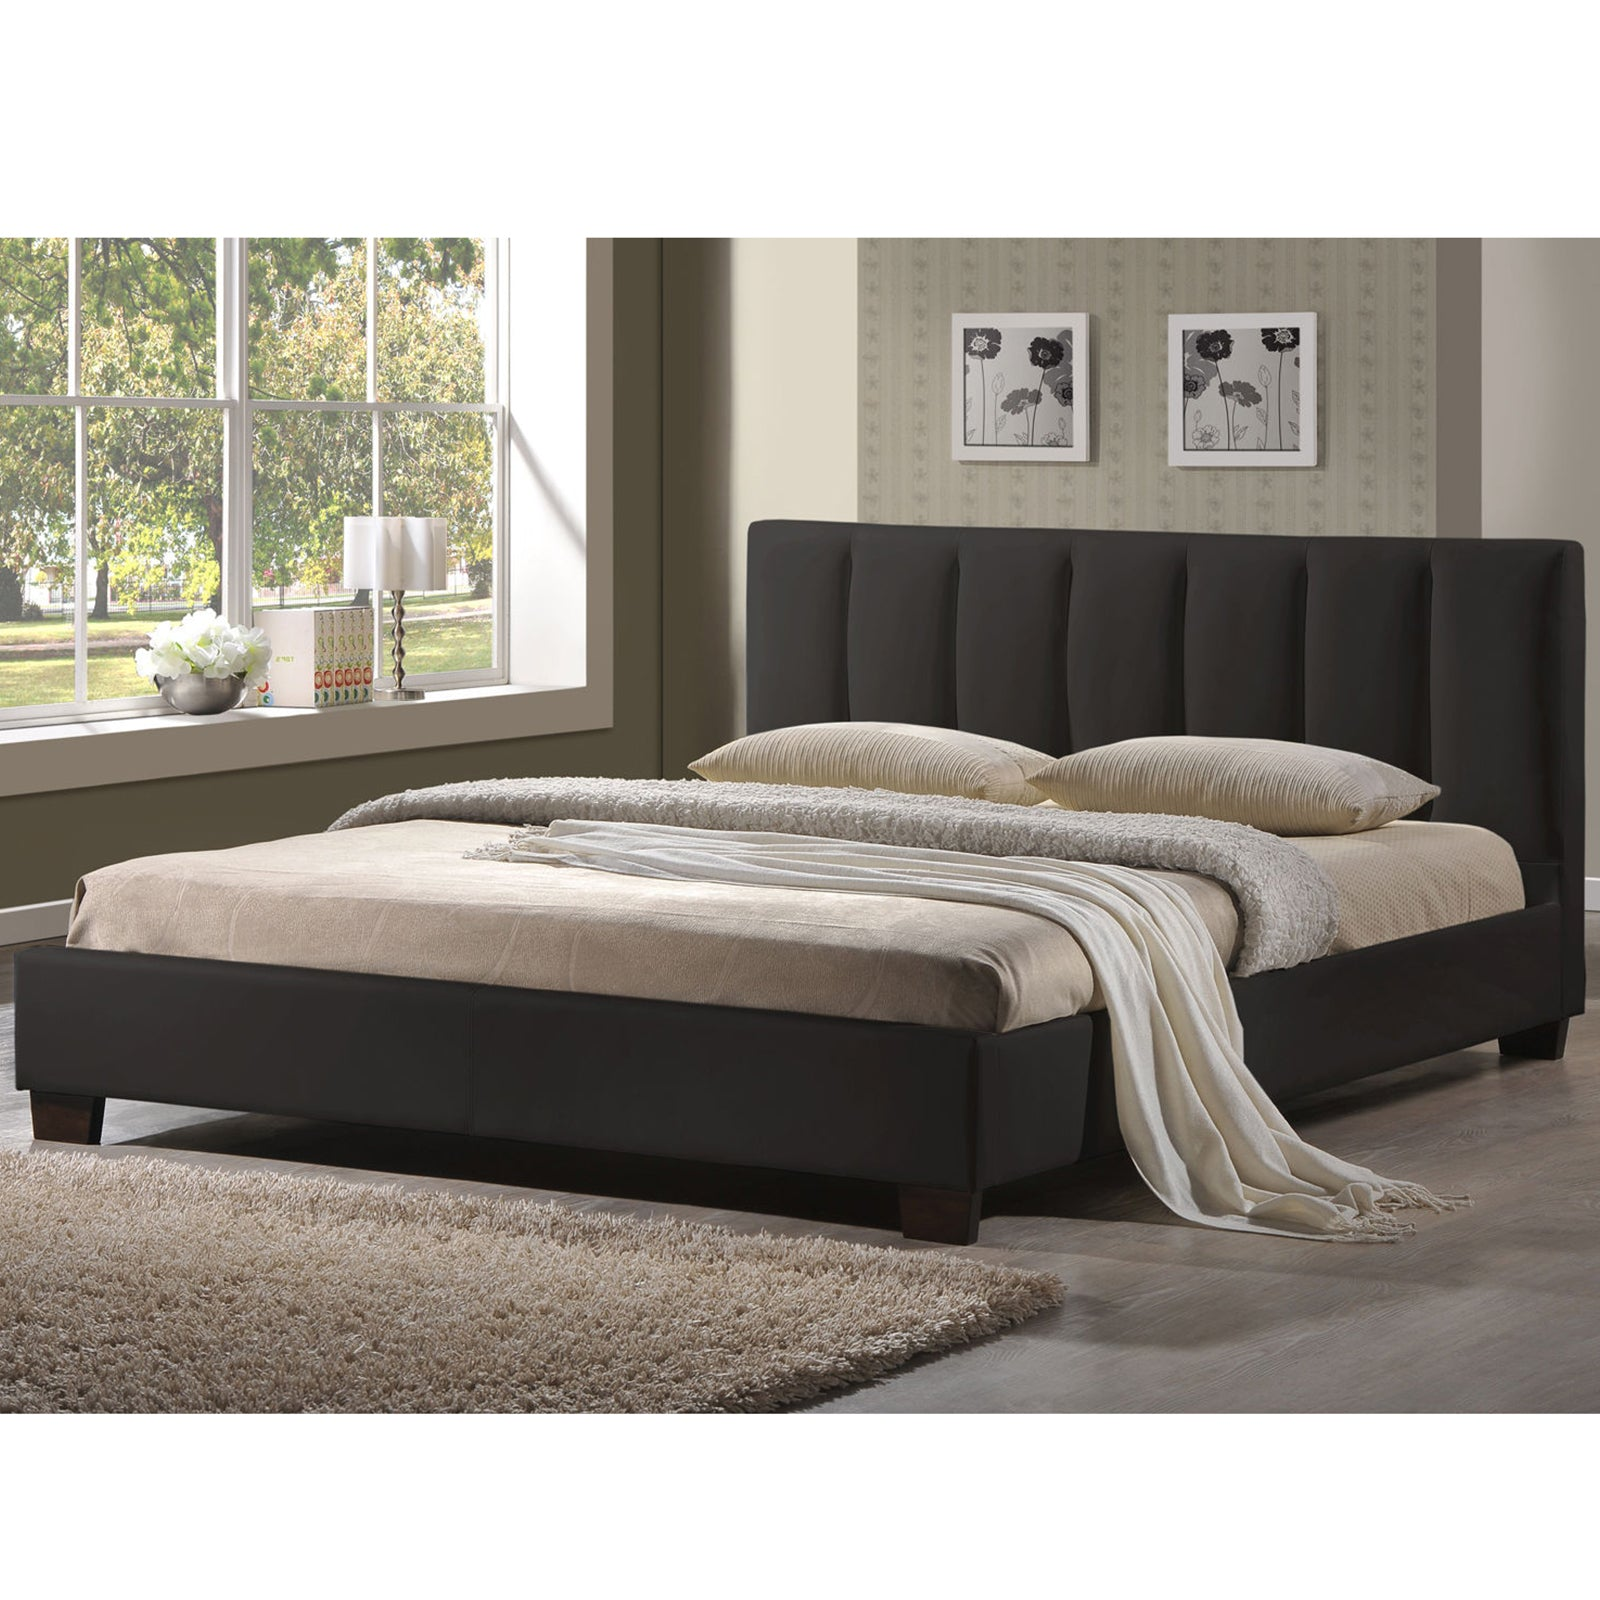 Persia Black PU Leather Bed Frame - Queen – Interiors Domain